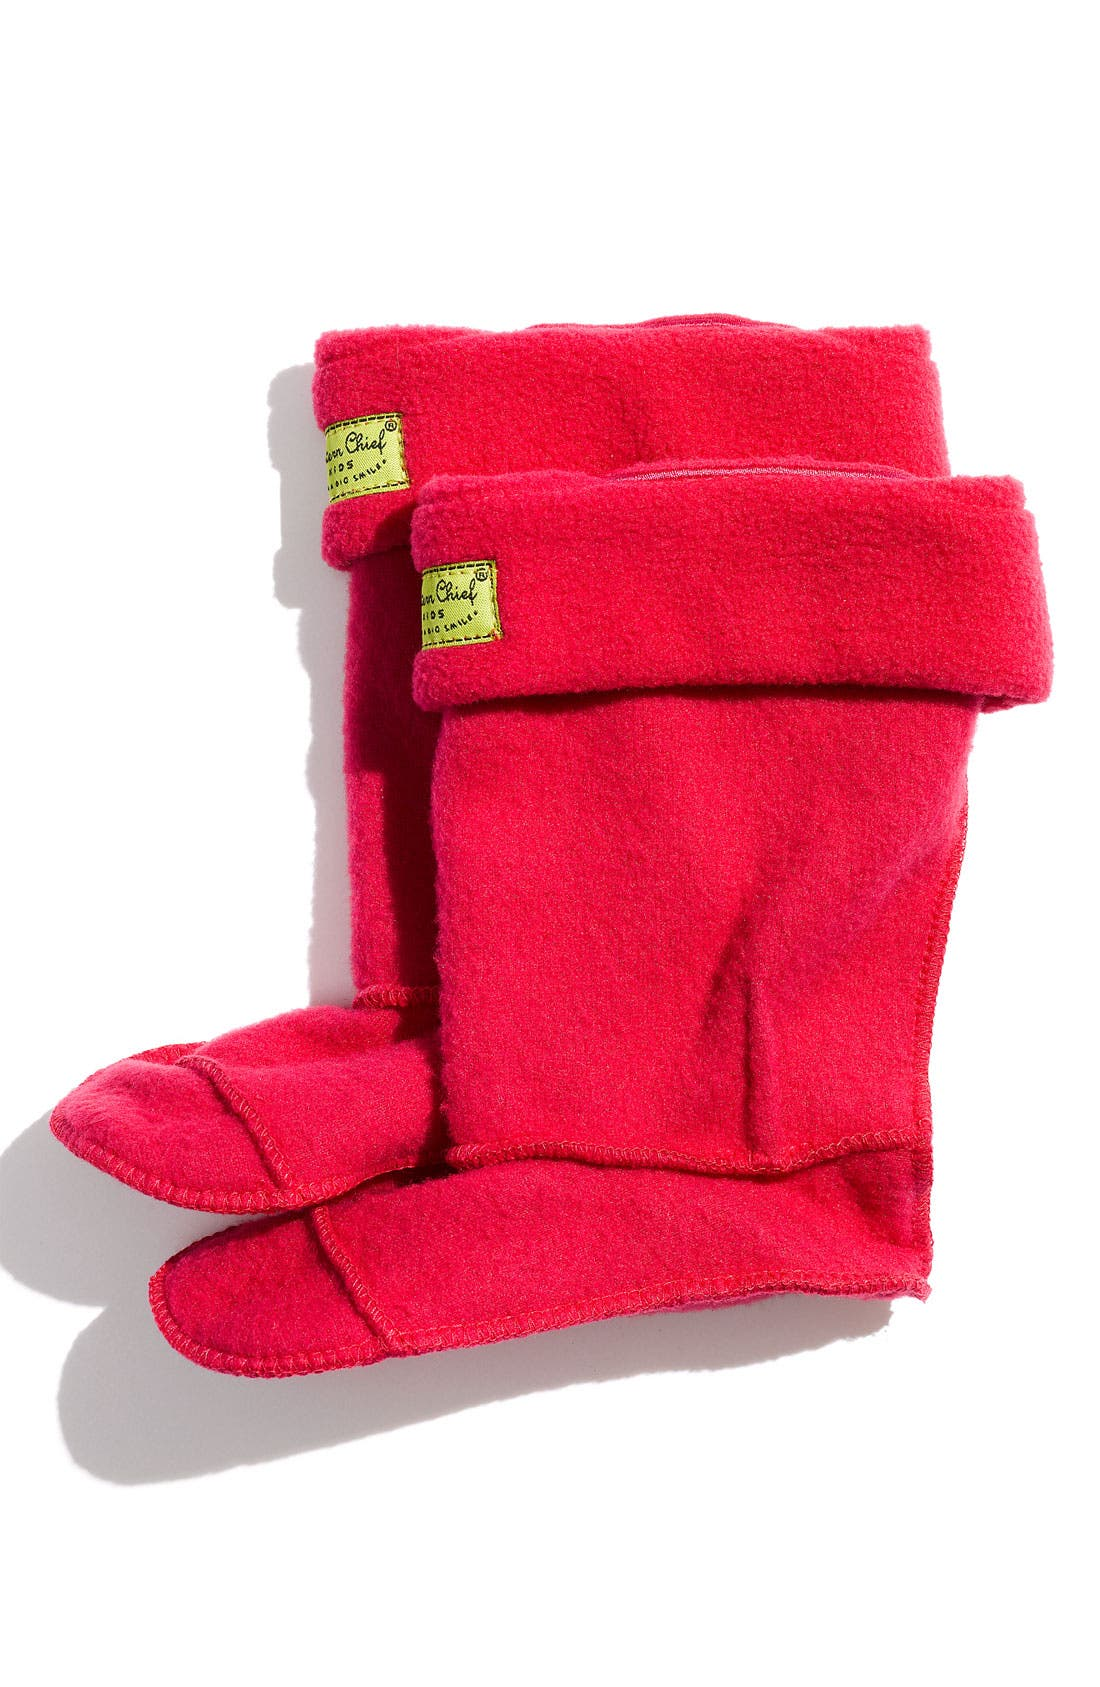 Alternate Image 1 Selected - Western Chief Fleece Boot Socks (Walker, Toddler & Little Kid)